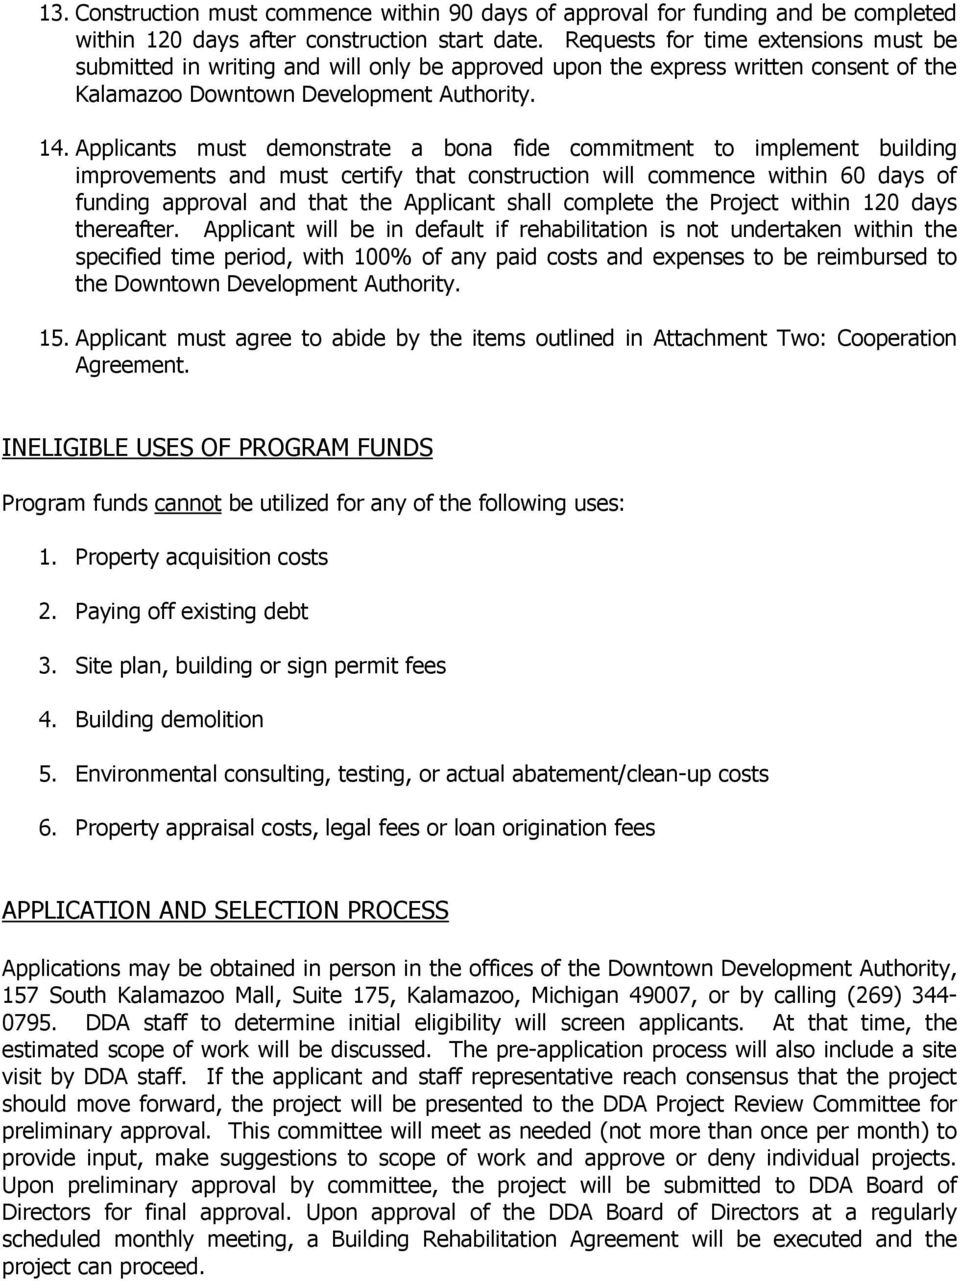 Applicants must demonstrate a bona fide commitment to implement building improvements and must certify that construction will commence within 60 days of funding approval and that the Applicant shall